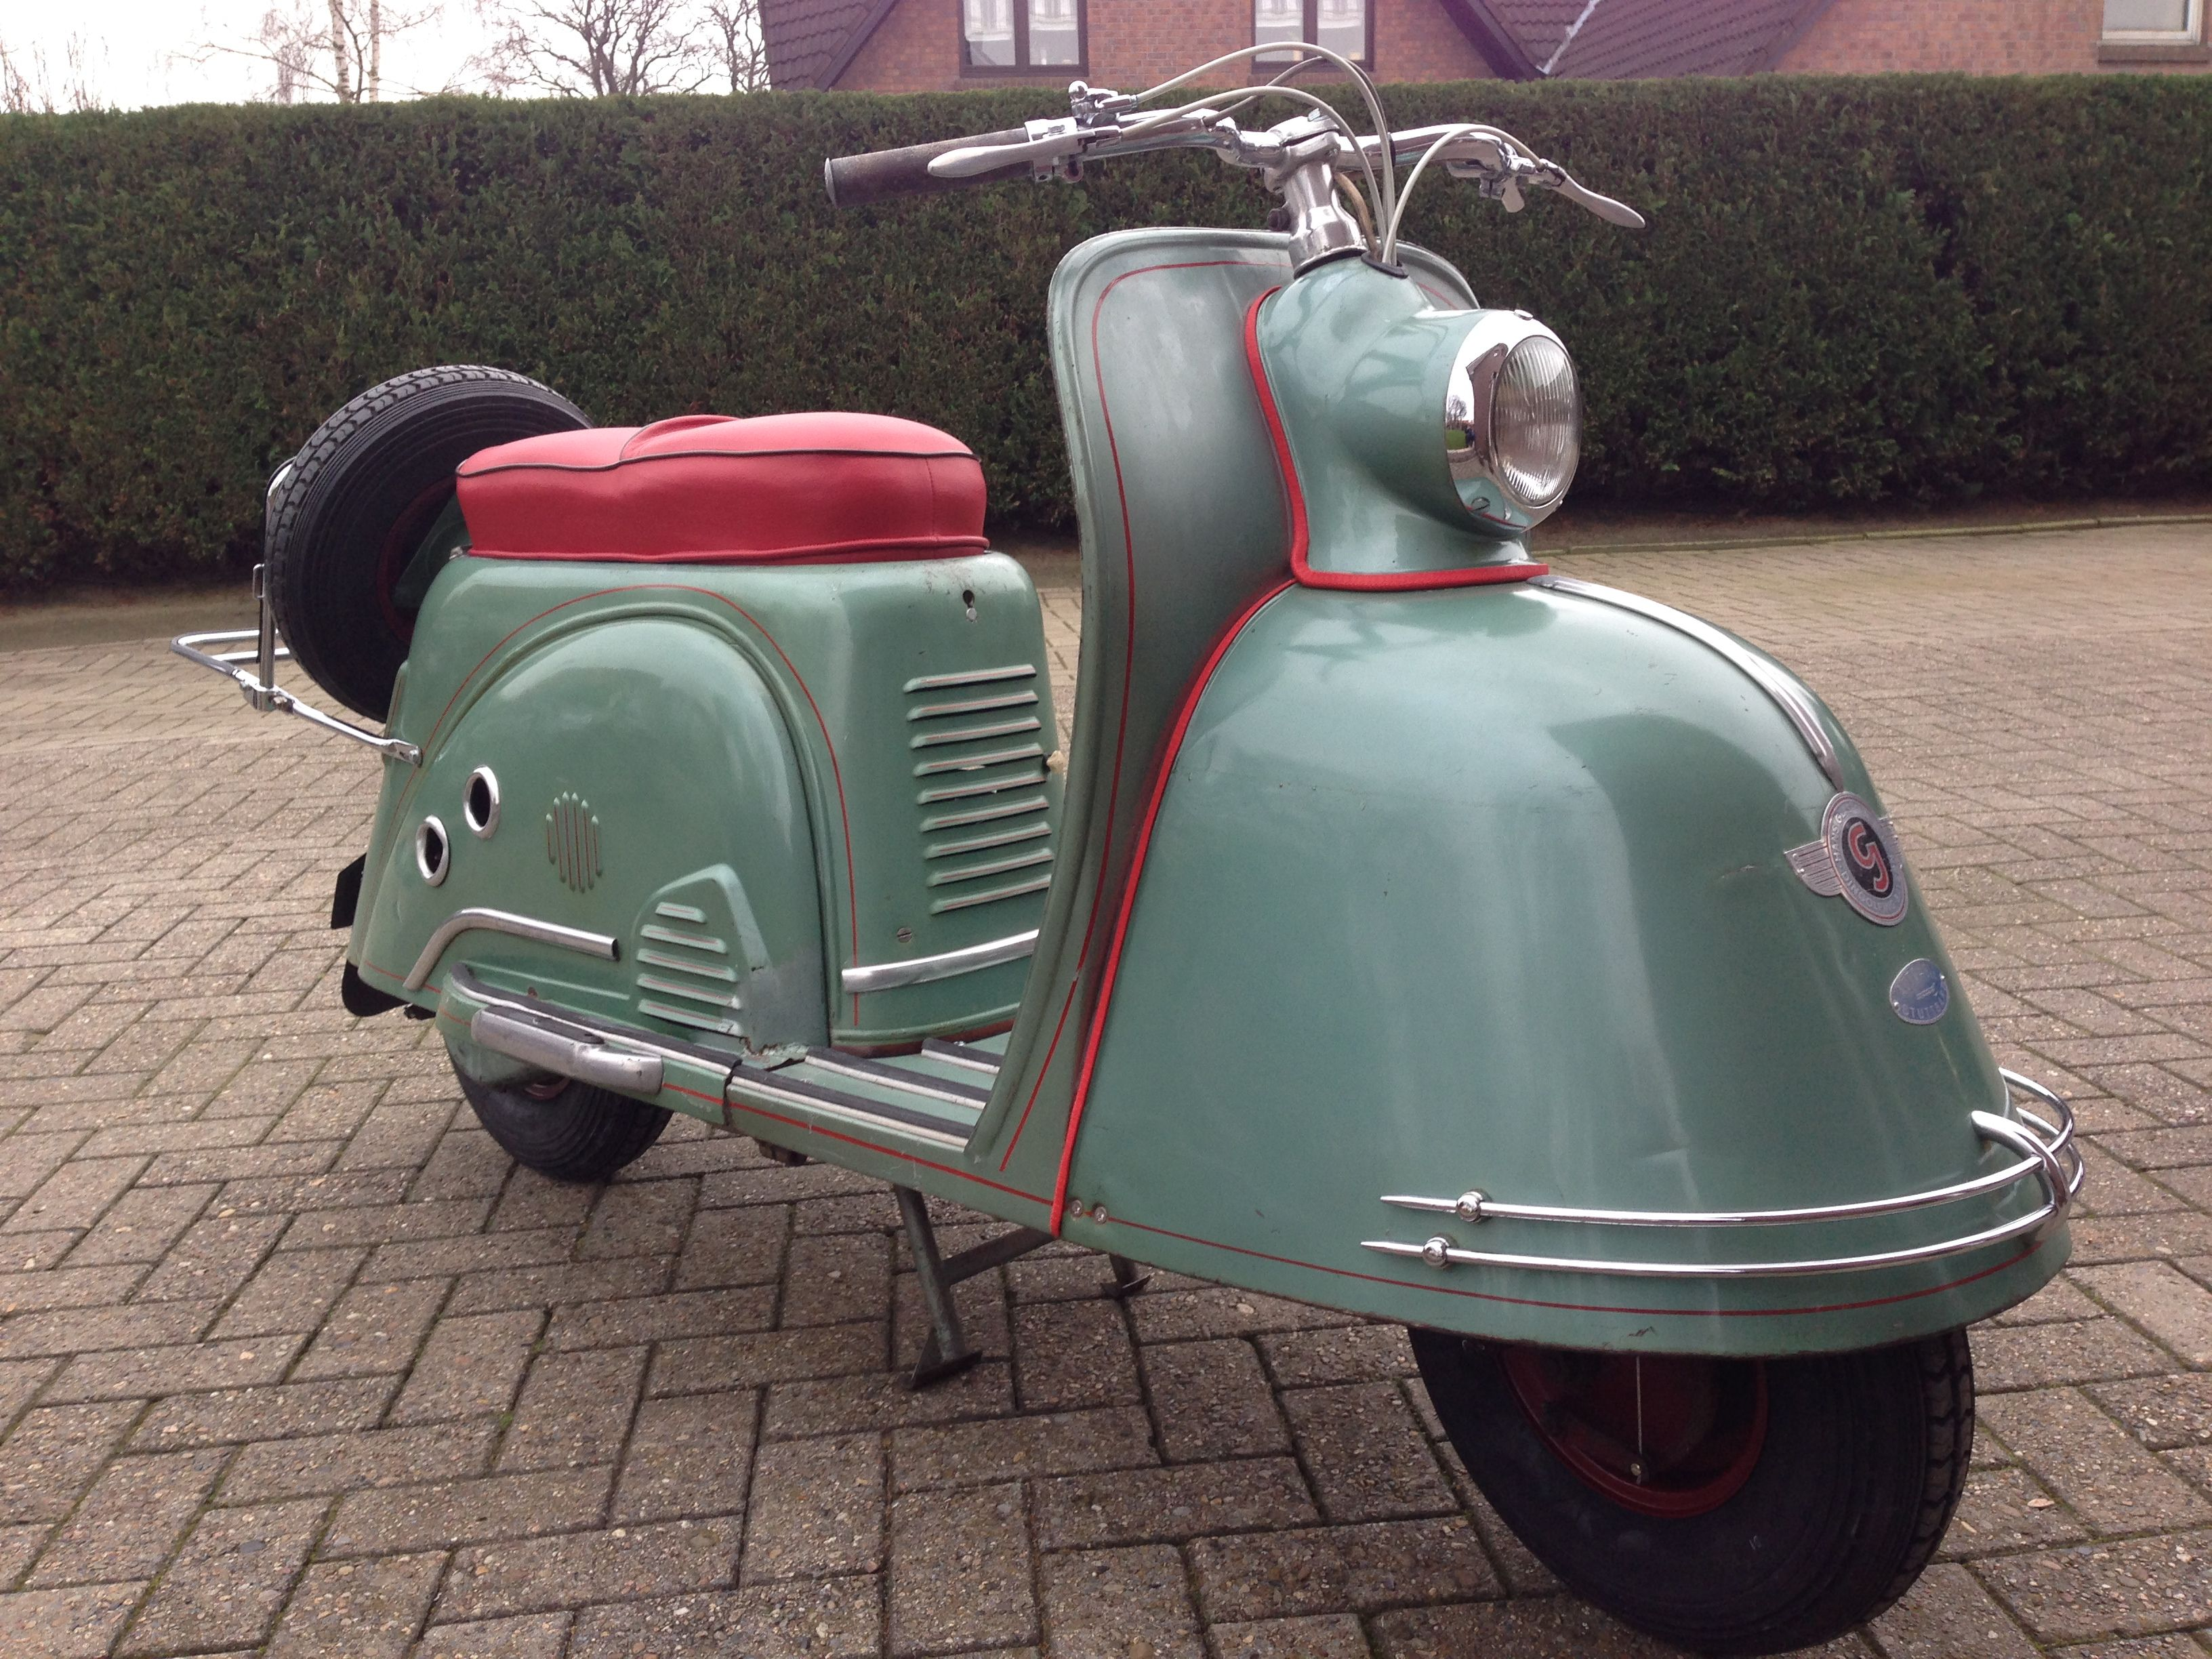 Goggo 200 | Scooter mania | Pinterest | Scooters and Engine